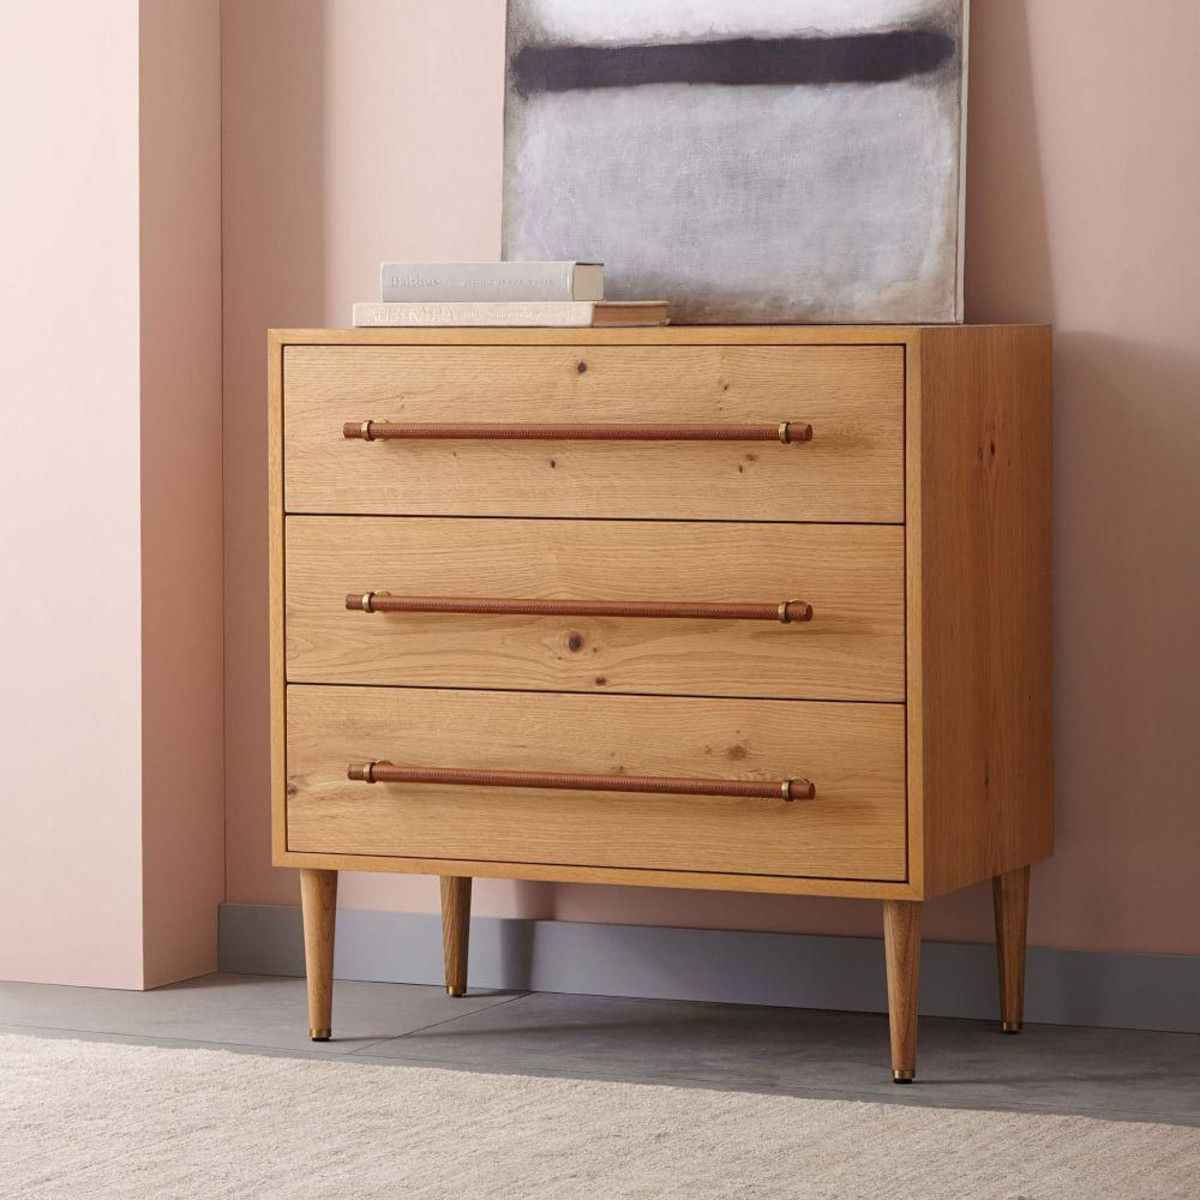 leather wrapped cabinet pulls. benson dresser - natural x engineered wood body; oak veneer in a finish. leather-wrapped metal drawer pulls finished with hand-stitching. leather wrapped cabinet h